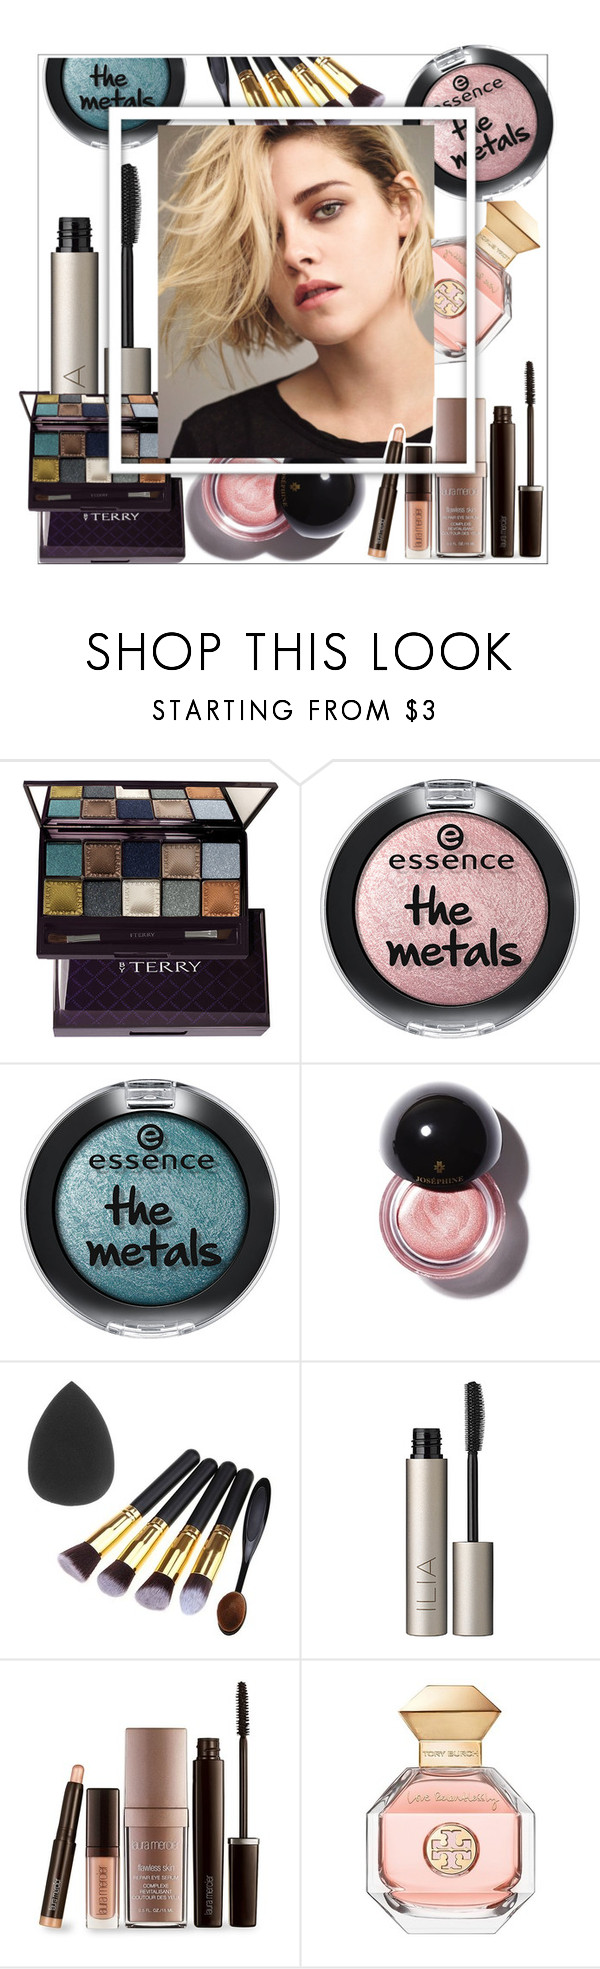 """my way"" by sophiejf ❤ liked on Polyvore featuring beauty, By Terry, Ilia, Laura Mercier and Tory Burch"